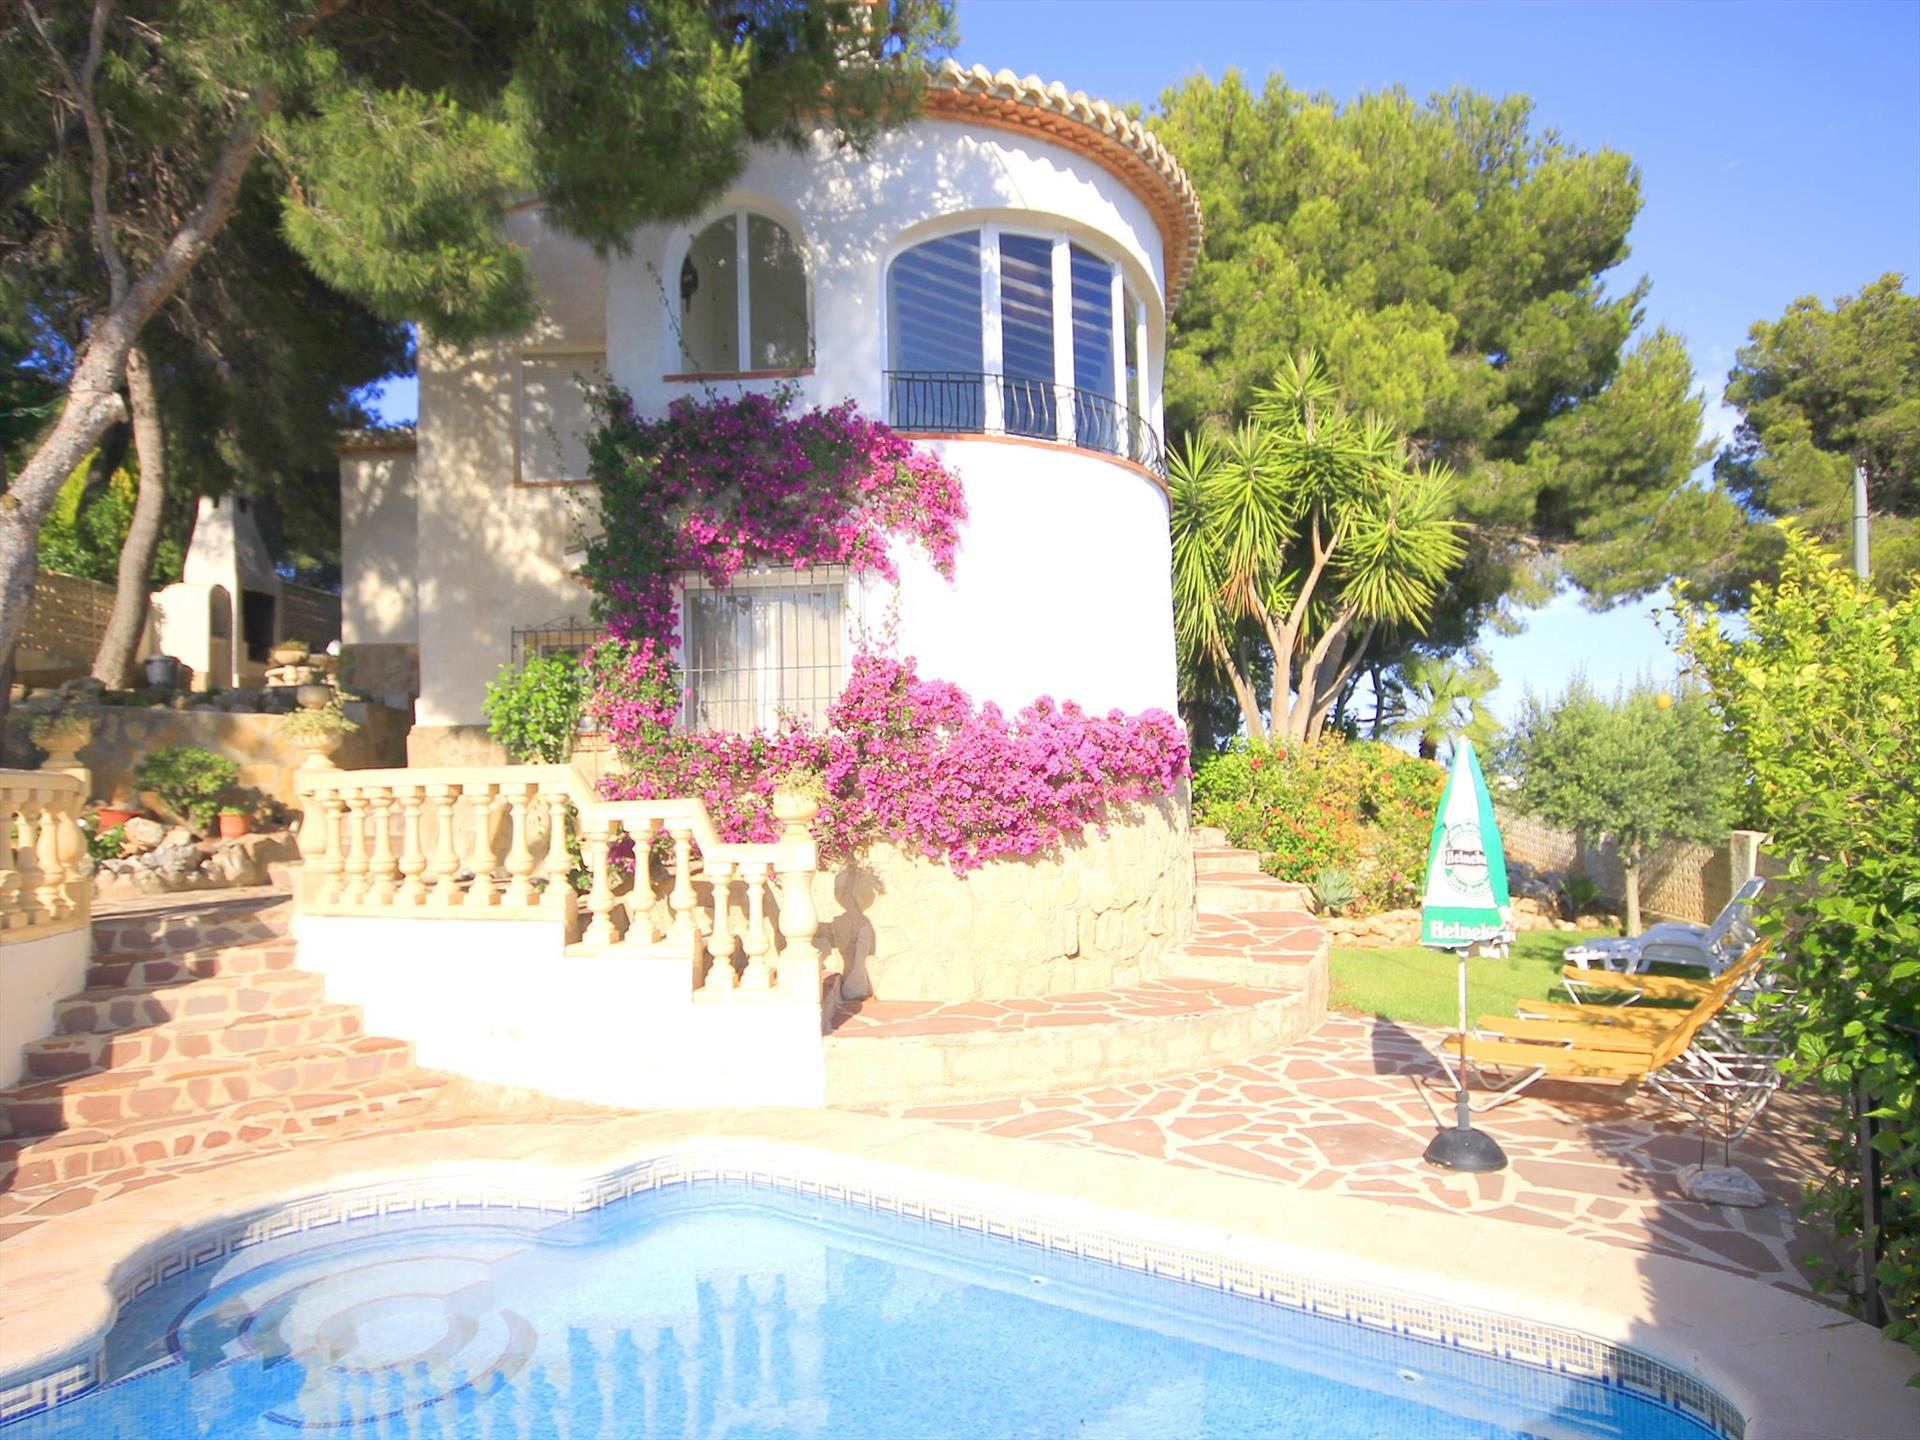 Marina 8, Wonderful and cheerful villa in Javea, on the Costa Blanca, Spain  with private pool for 8 persons.....